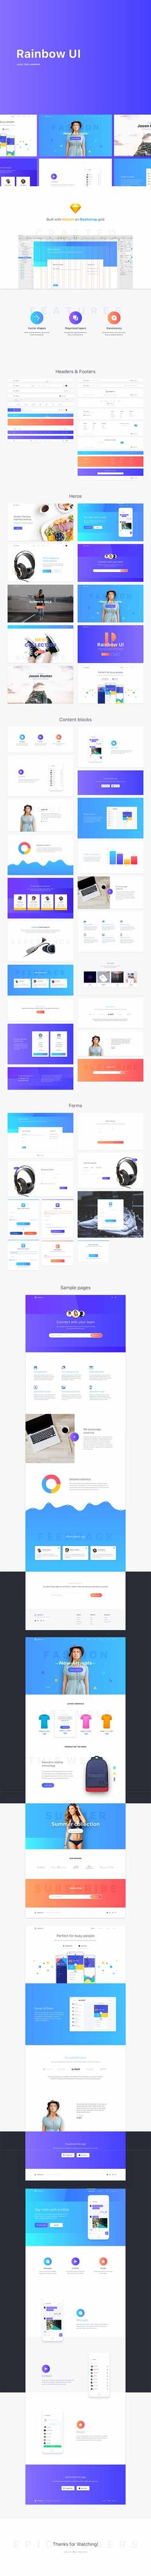 Epic Rainbow Kit - Stripe inspired Sketch based Landing Page UI Kit Epic Rainbow kit is a fresh, stylish and modern UI kit, carefully crafted to help you build amazing landing pages in Sket Sketch Photoshop, Ui Kit, Landing, Rainbow, Base, Templates, Inspired, Inspiration, Rain Bow